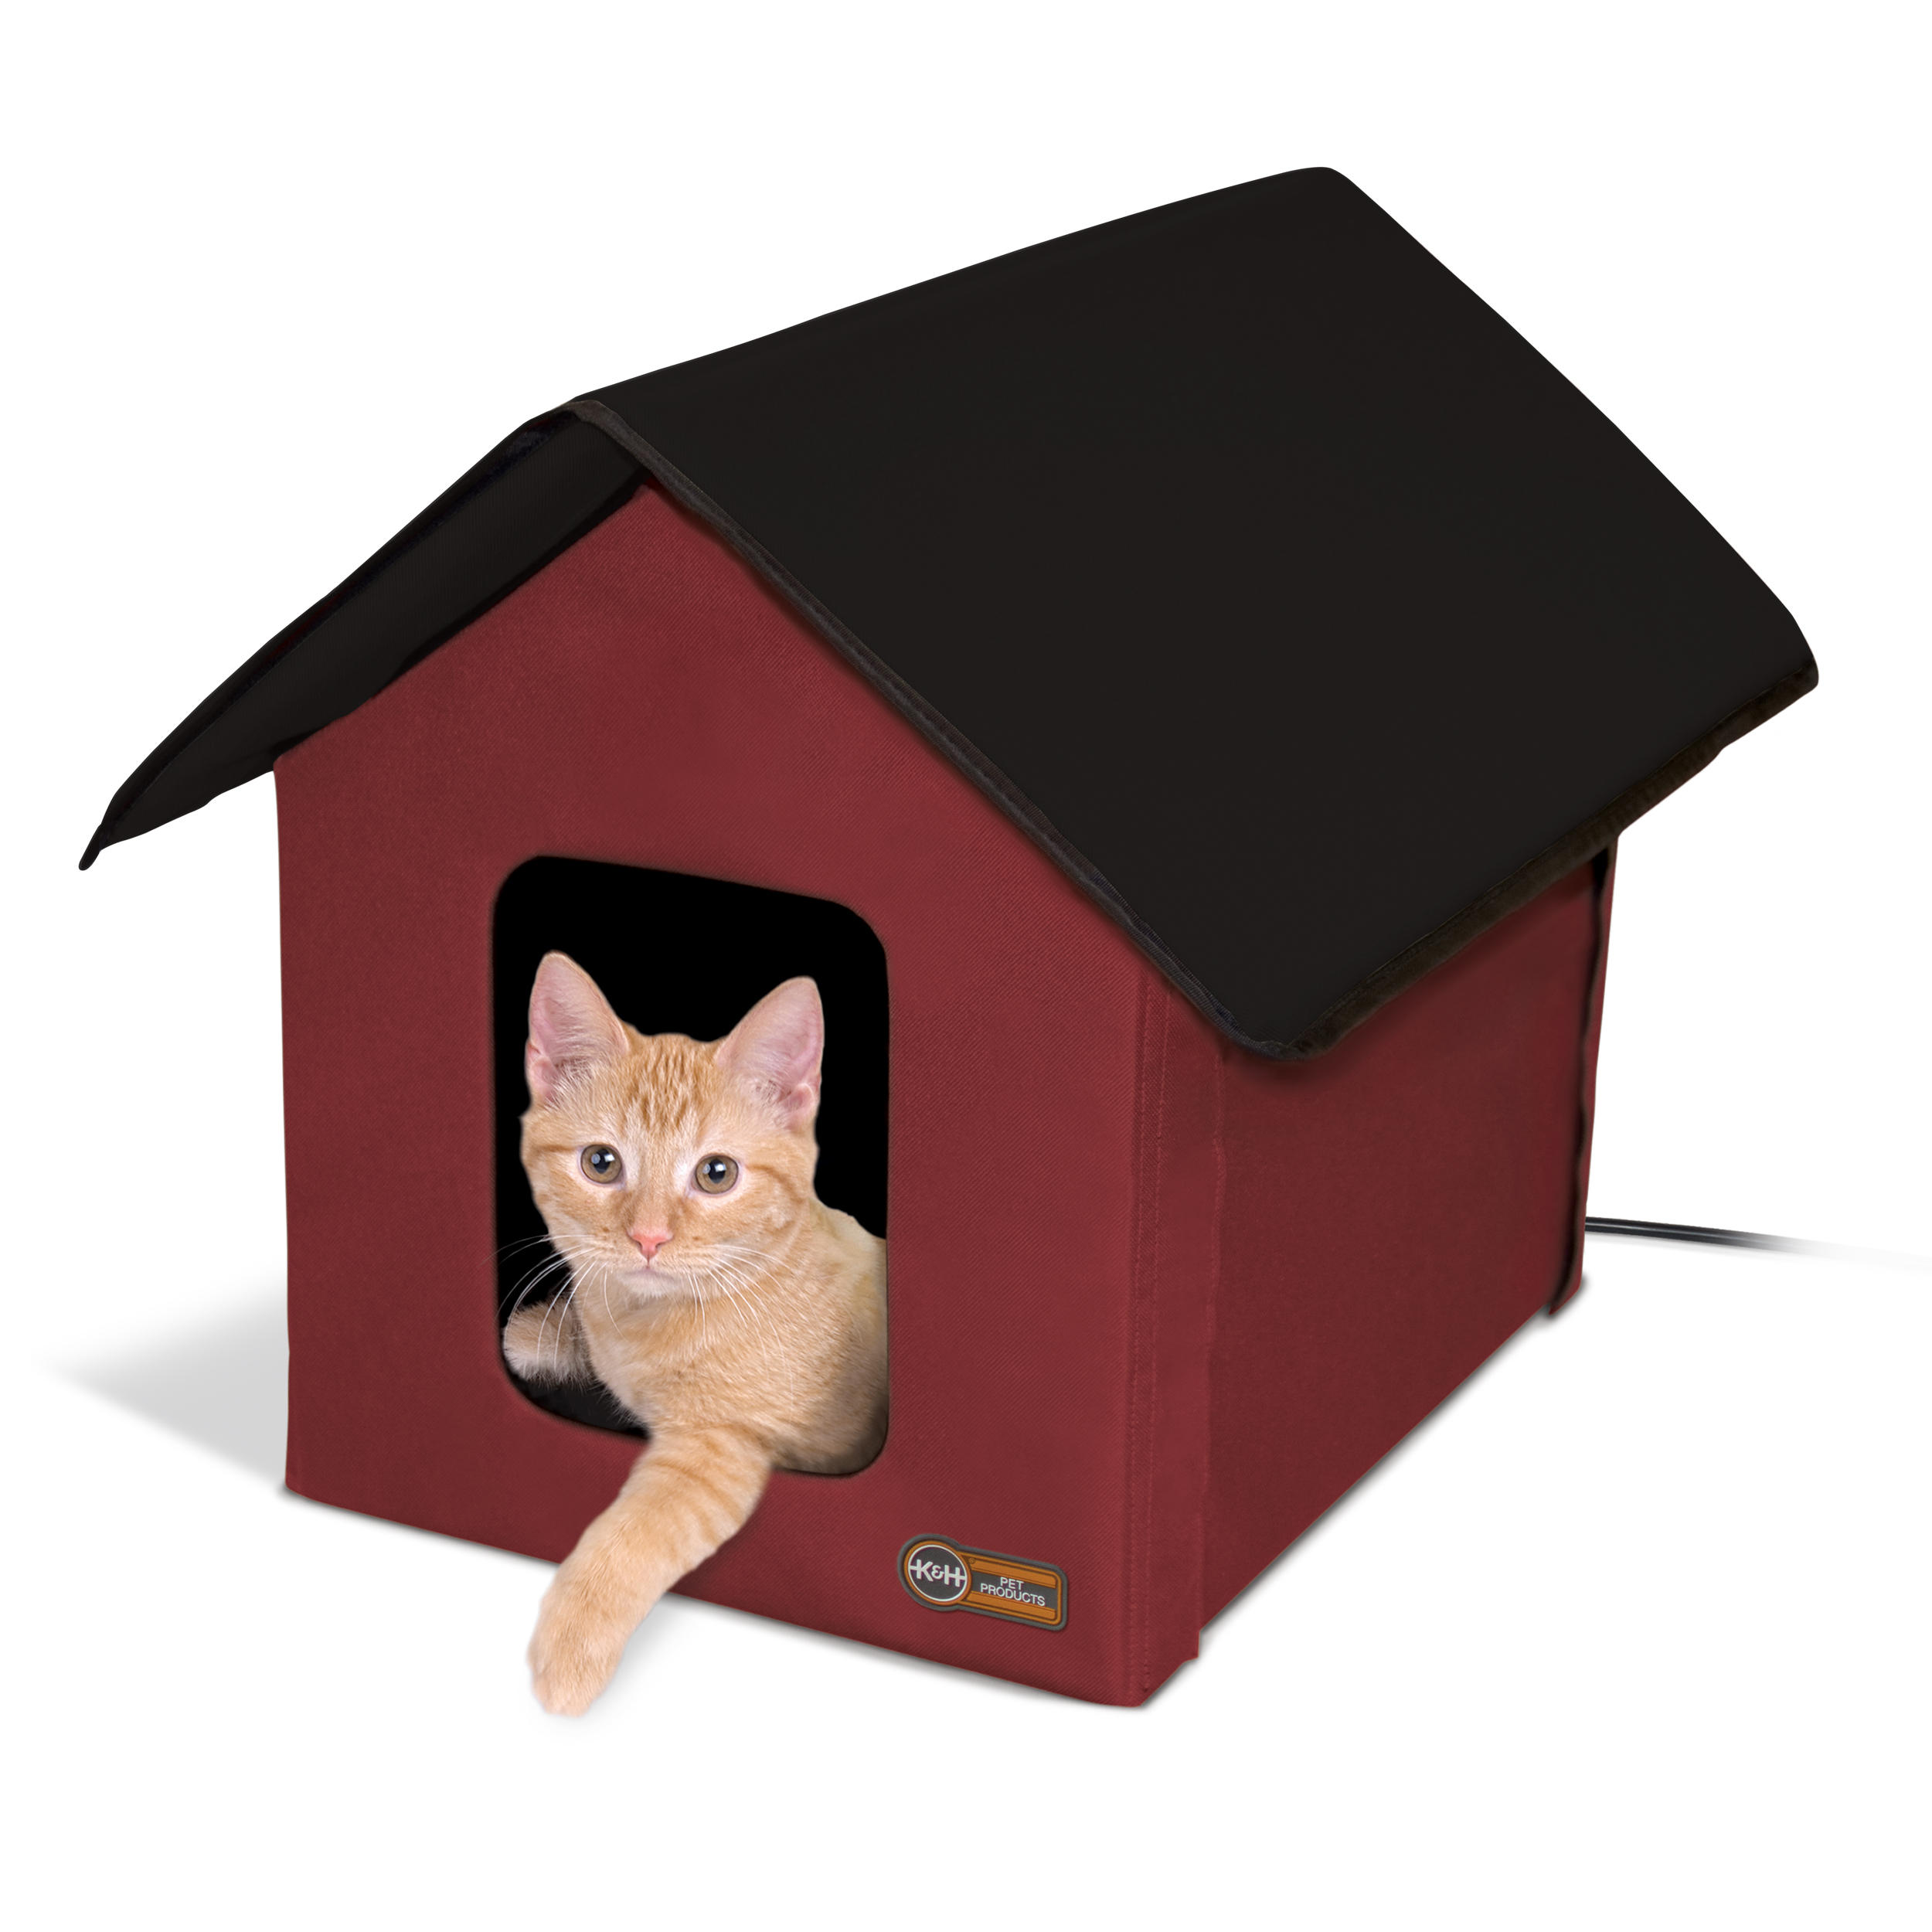 "K&H Outdoor Heated Kitty House Barn, Red/Black, 18"" x 22"" x 17"", 20W"